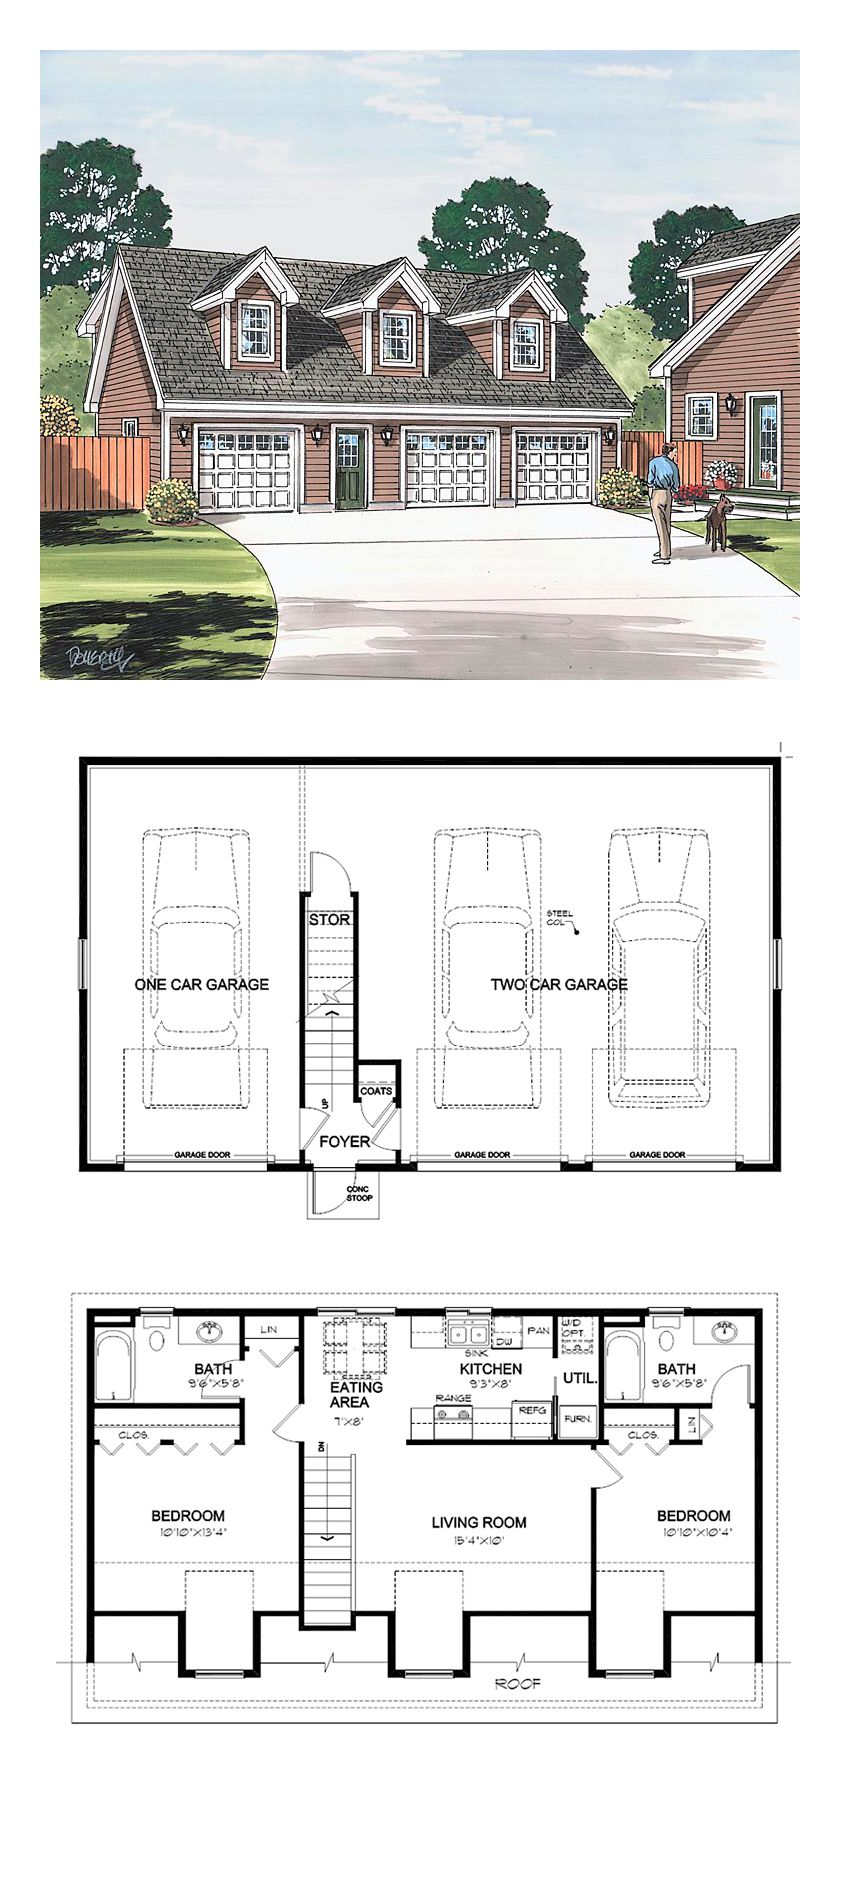 Garage Apartment Plan 30032   Total Living Area  887 sq  ft   2. Garage Apartment Plan 30032   Total Living Area  887 sq  ft   2